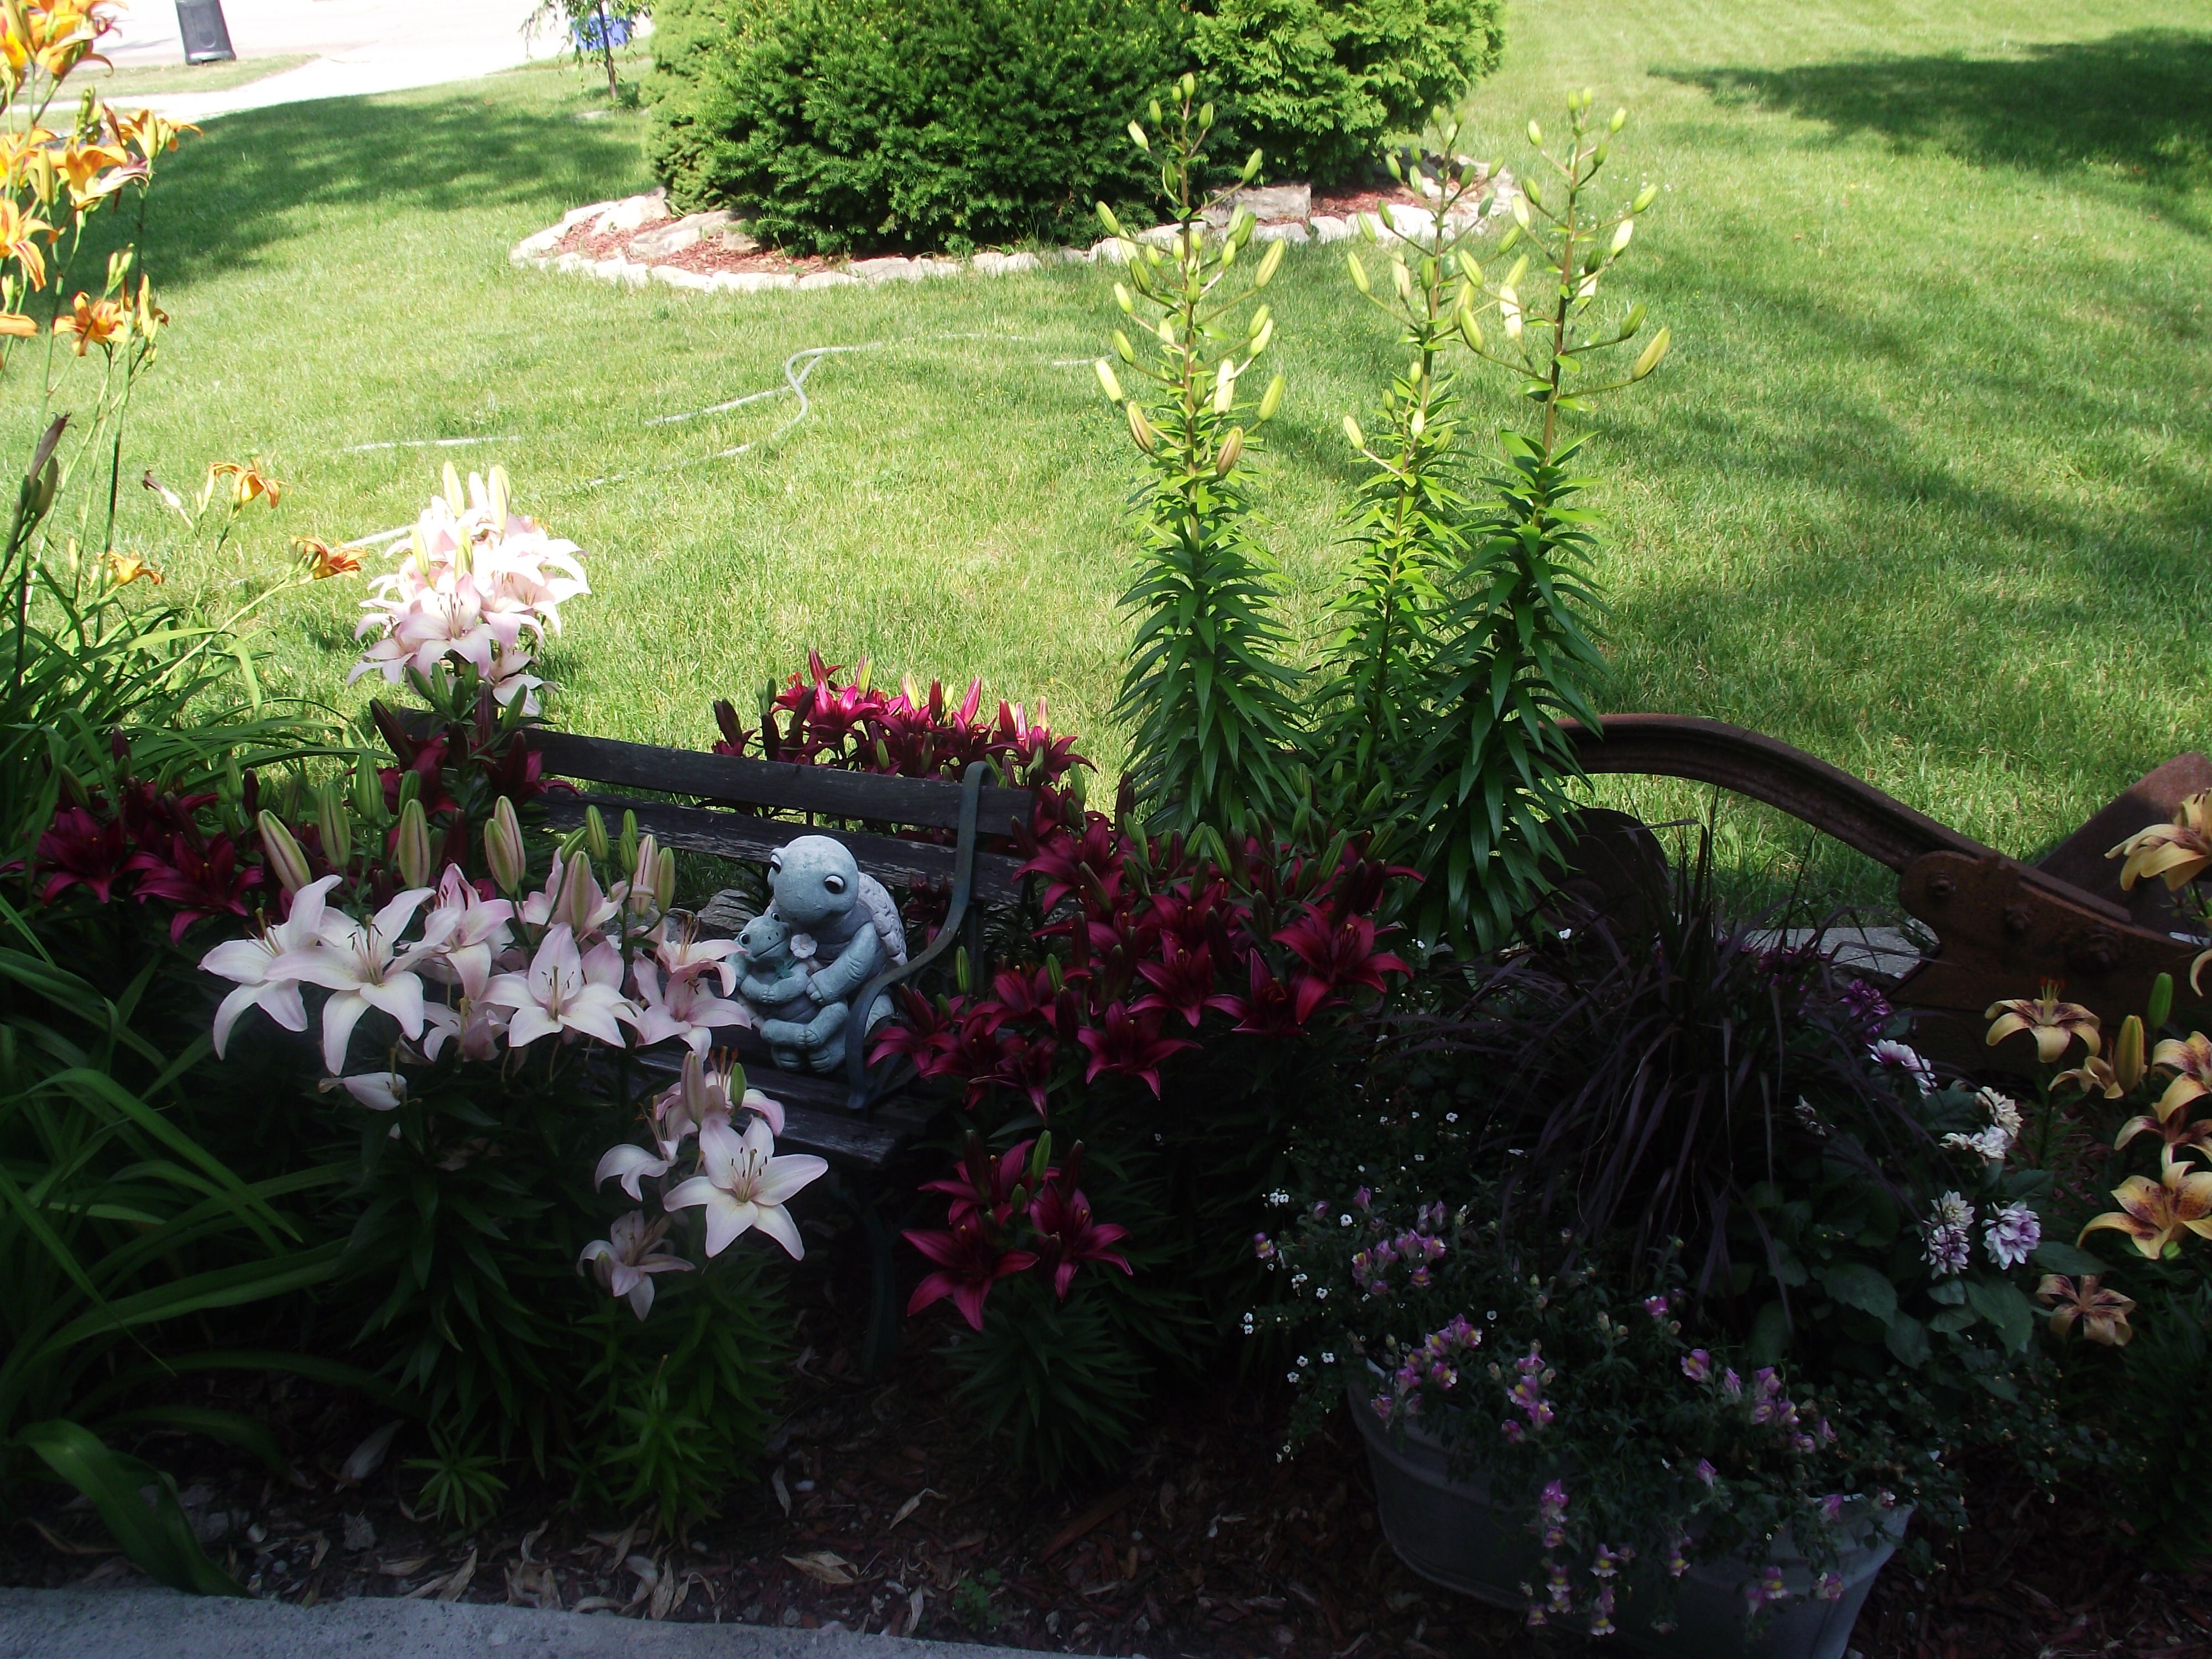 An old washtub as a planter and an old plow as garden decor ...